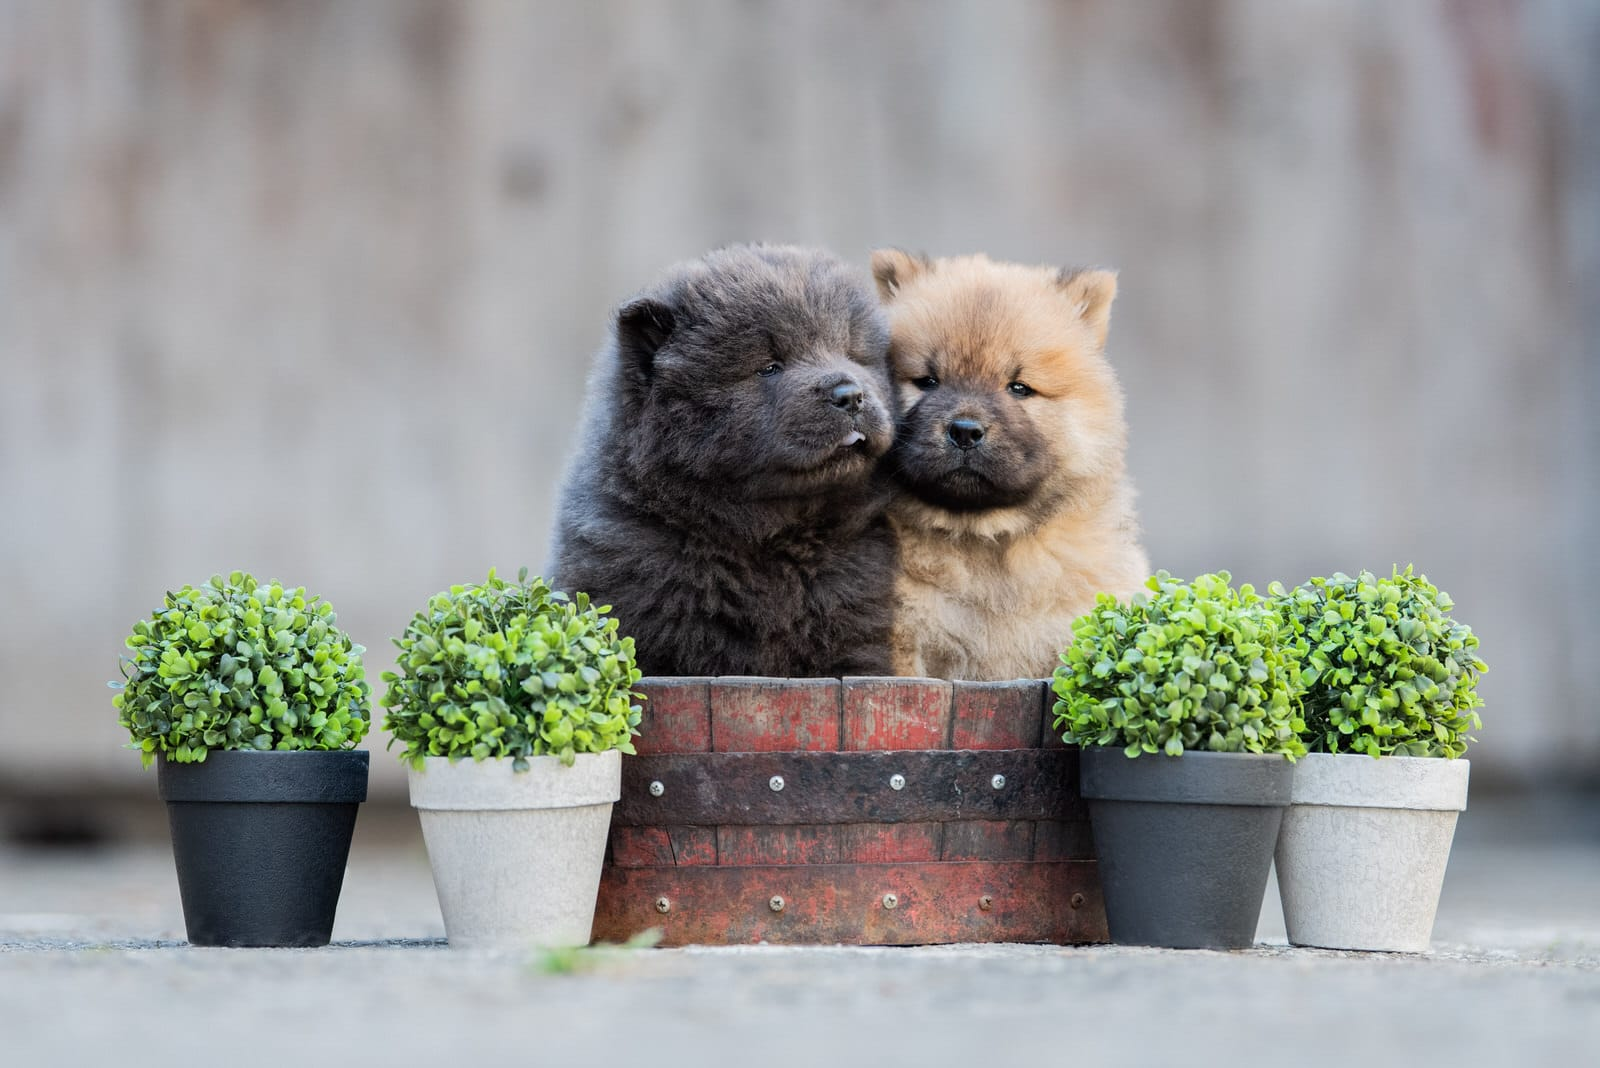 Photo chow chow - photographe animaliere bayonne